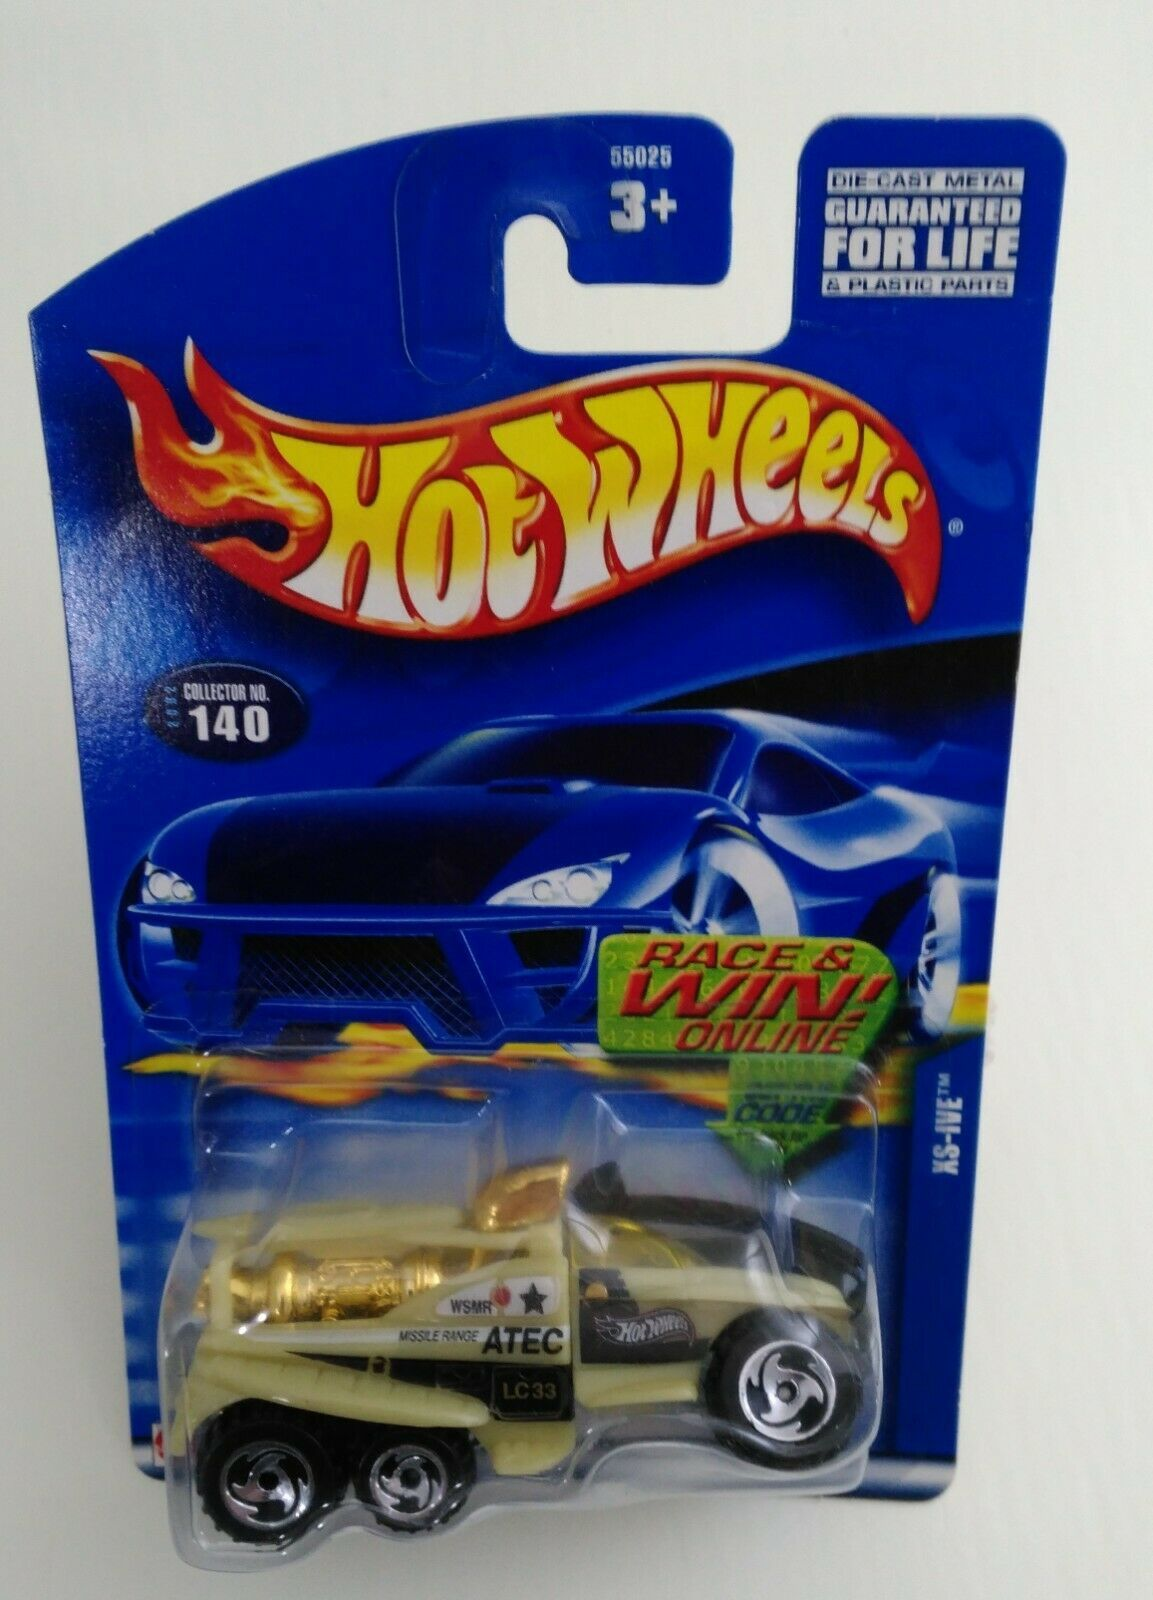 Primary image for Hot Wheels 2002 Collector #140 XS-IVE